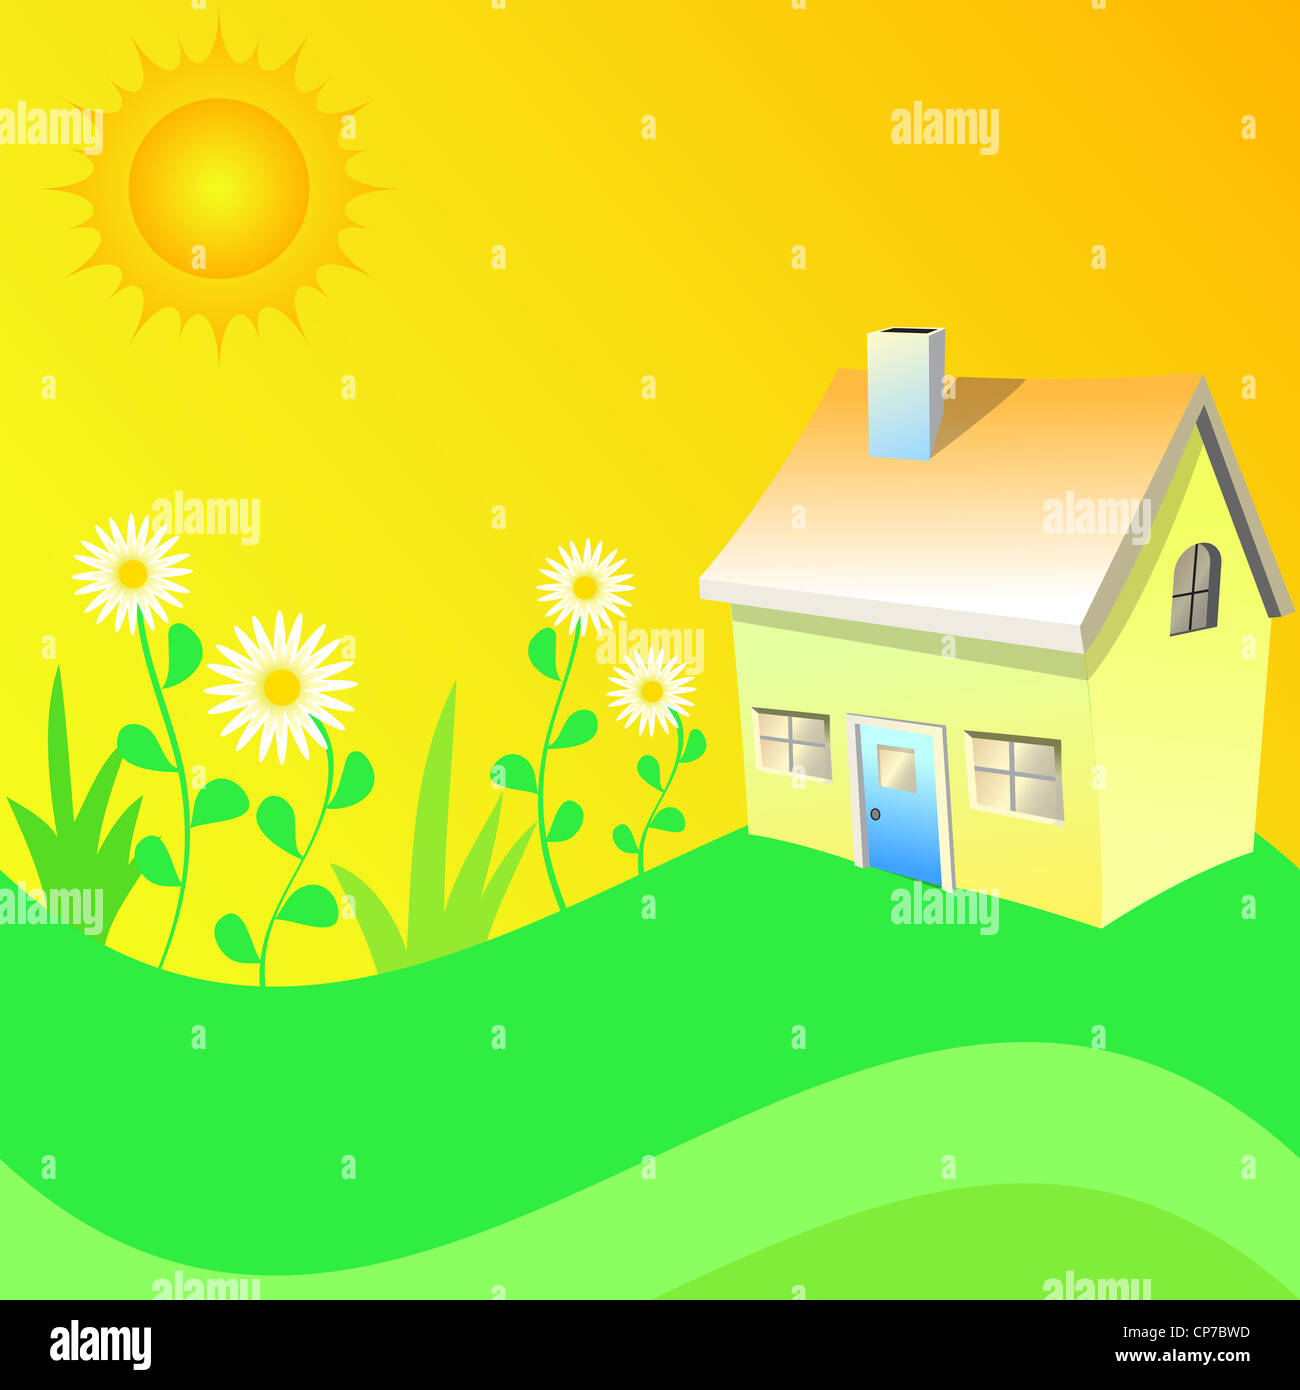 Summer sun with home and flowering garden illustration Stock Photo